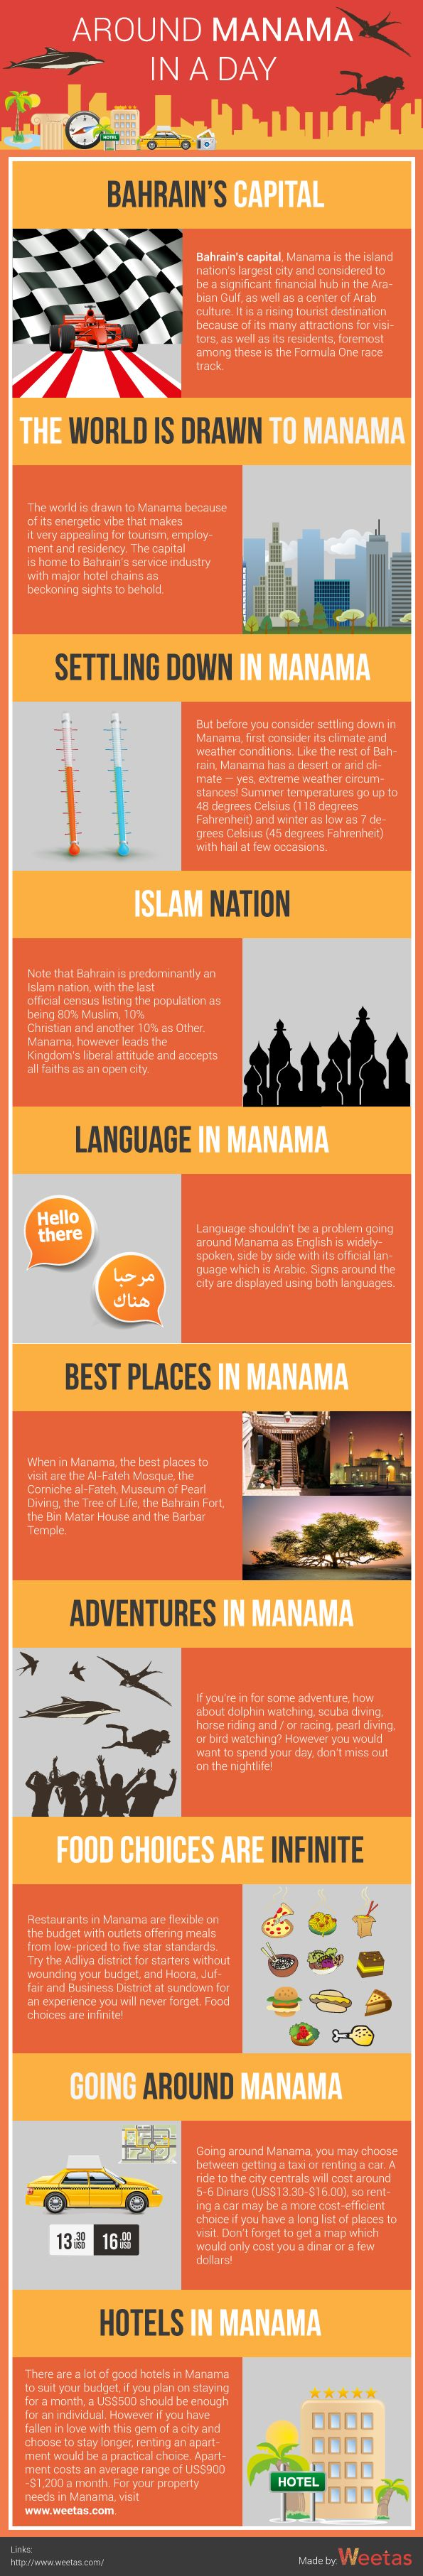 weetas #blog Around Manama in A Day If you are intending to visit Manama, you may need some guidelines to spend unforgettable day. Here are some information that can help you to know more about Manama. Manama,  https://blog.weetas.com/around-manama-day-infographic/